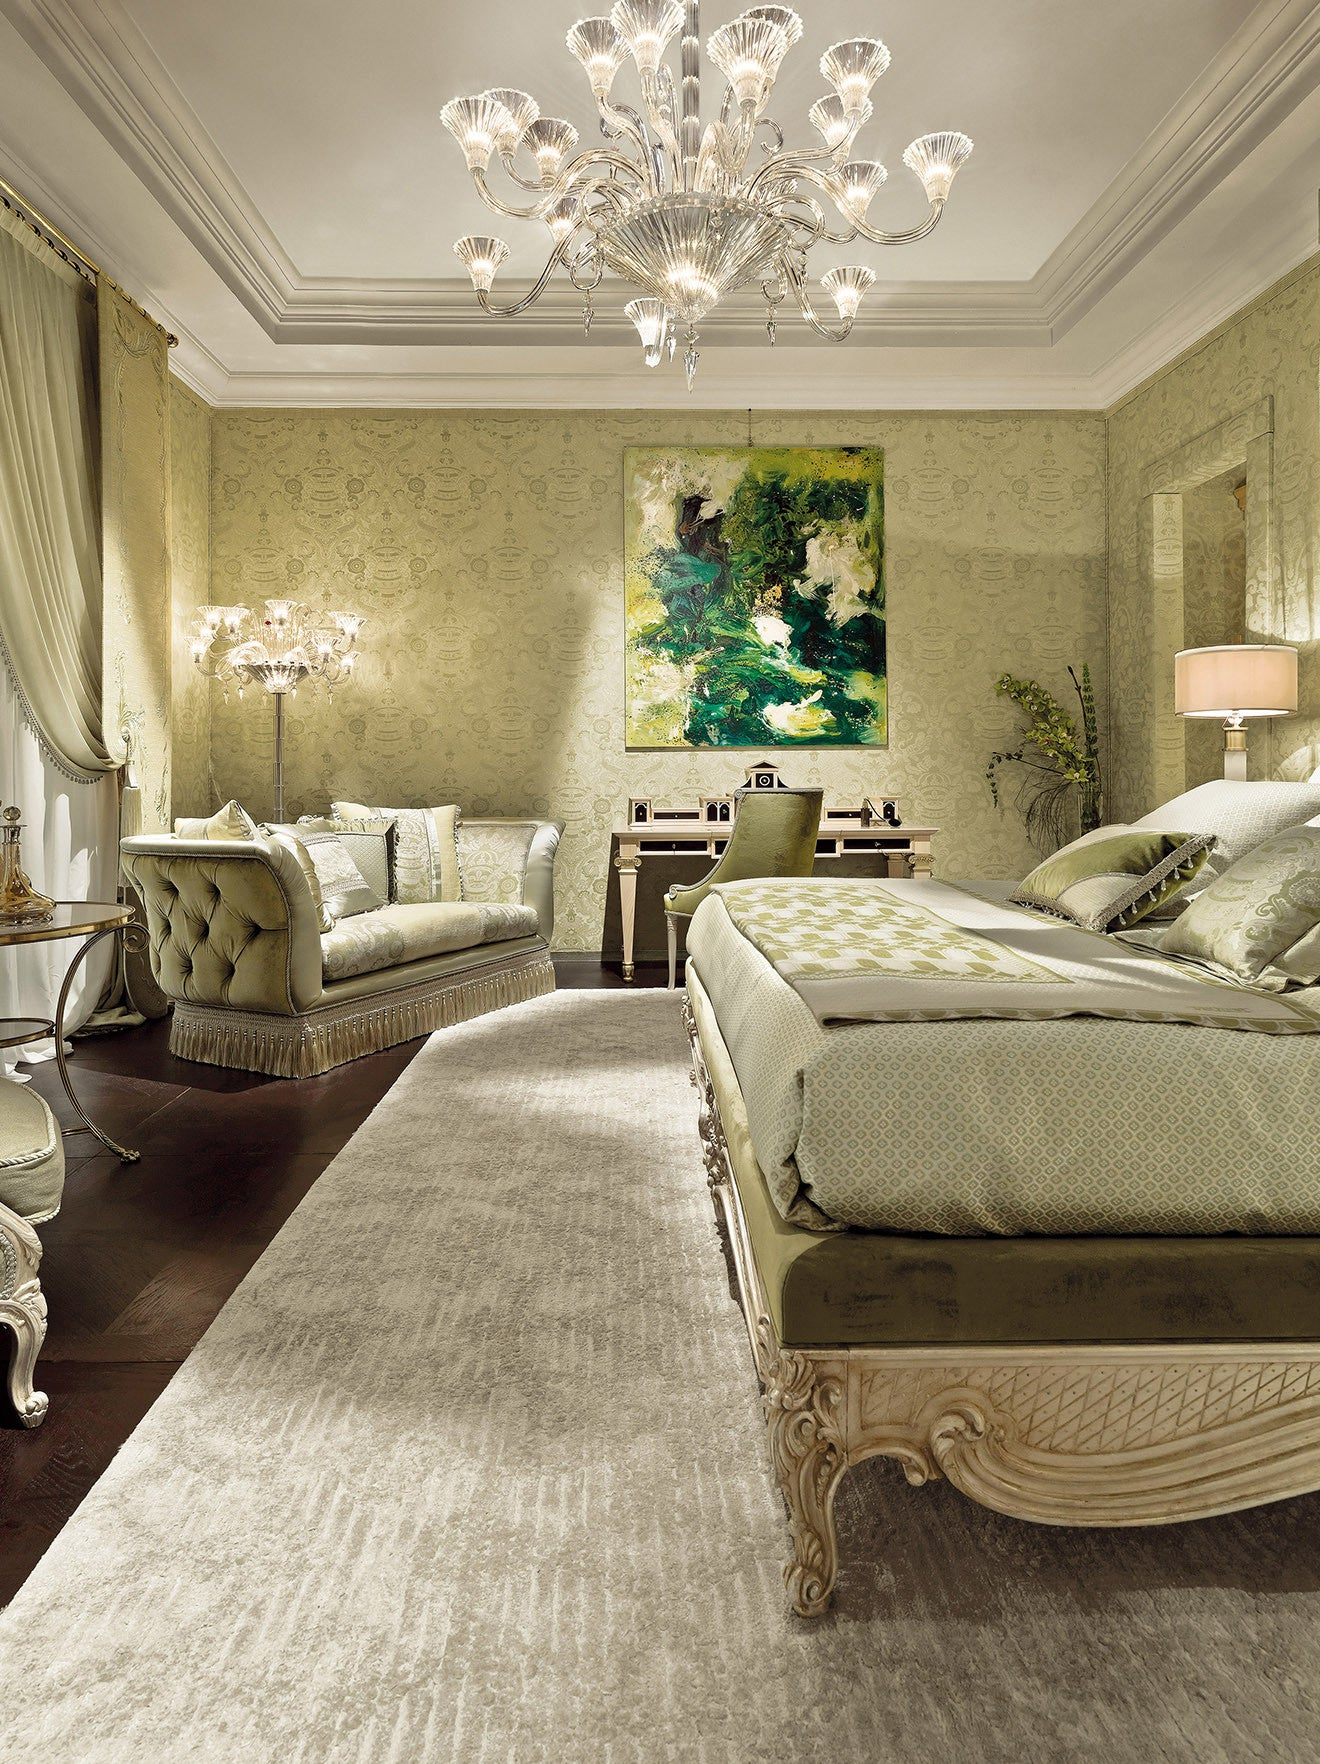 Provasi luxury Italian bedroom furniture in light green upholstery